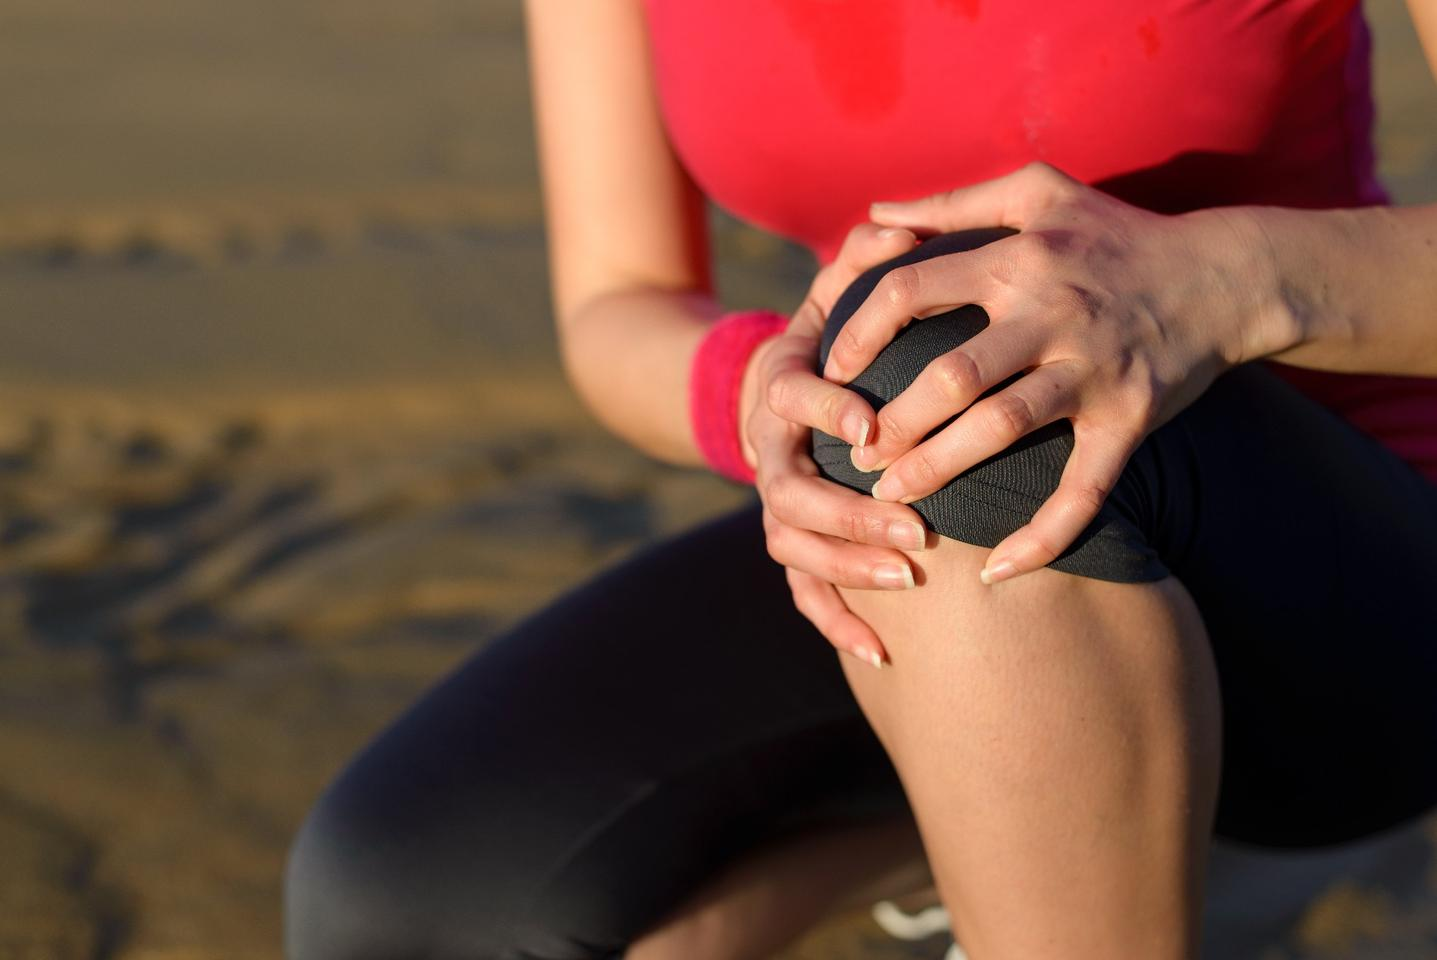 RCGD 423 may initially be used to treat osteoarthritis or juvenile arthritis